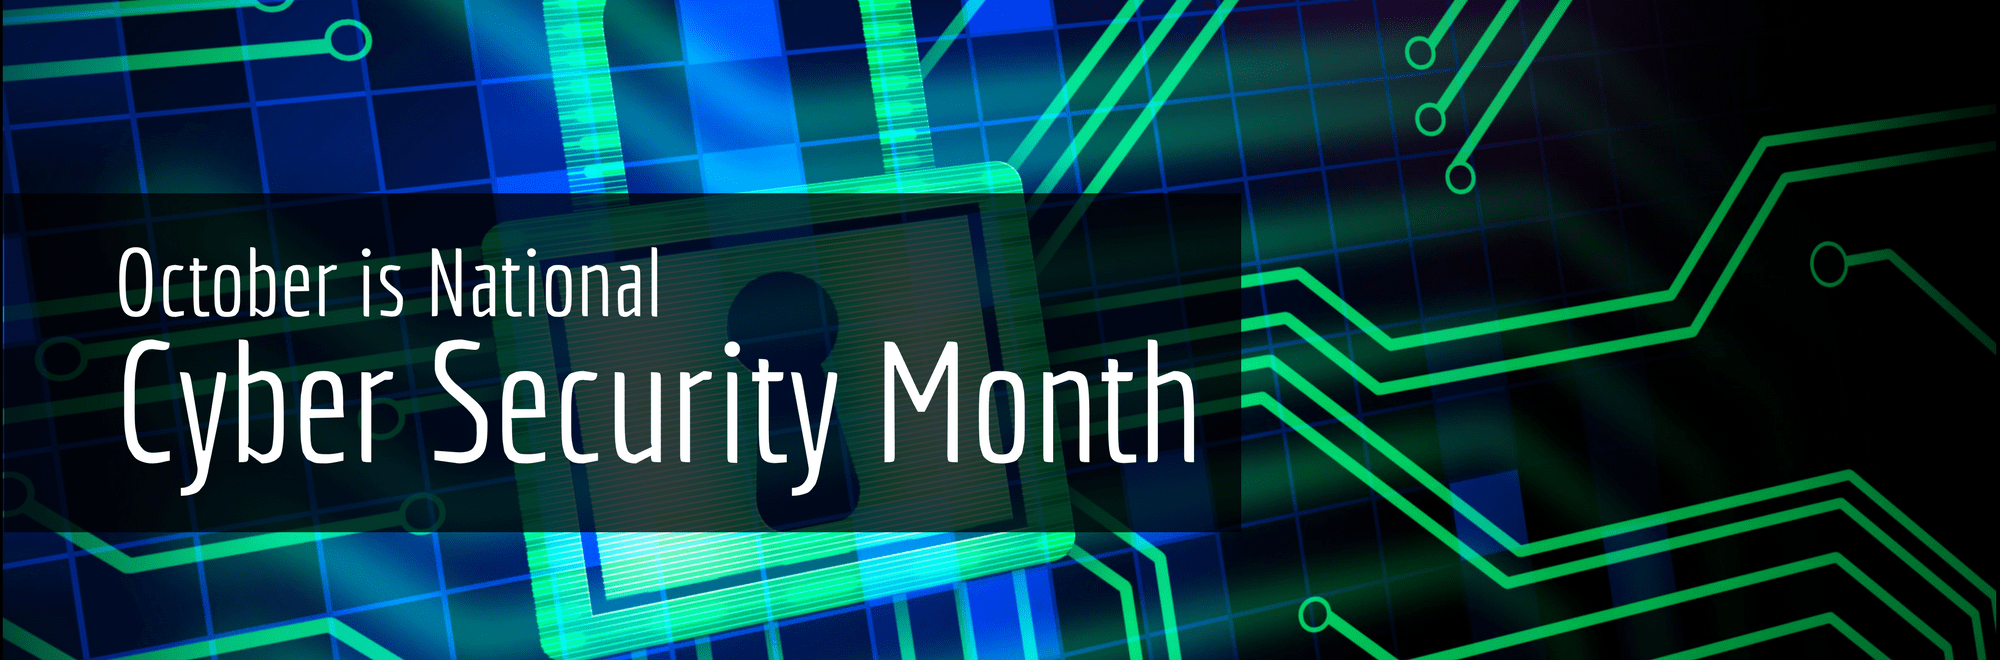 2017 Cyber Security Month Banner